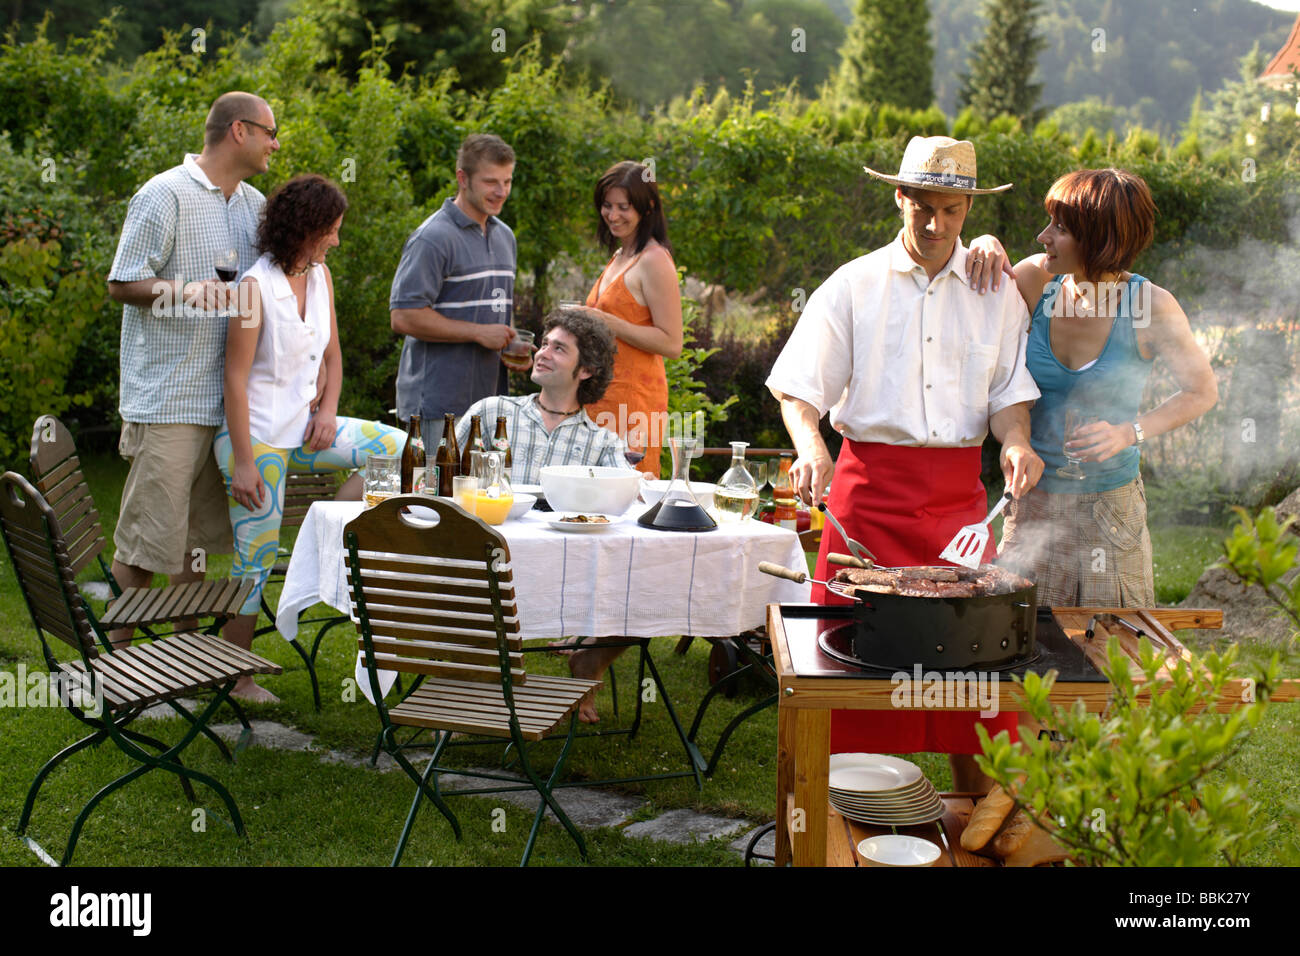 barbecue party garden party grill party stock photo 24390463 alamy. Black Bedroom Furniture Sets. Home Design Ideas